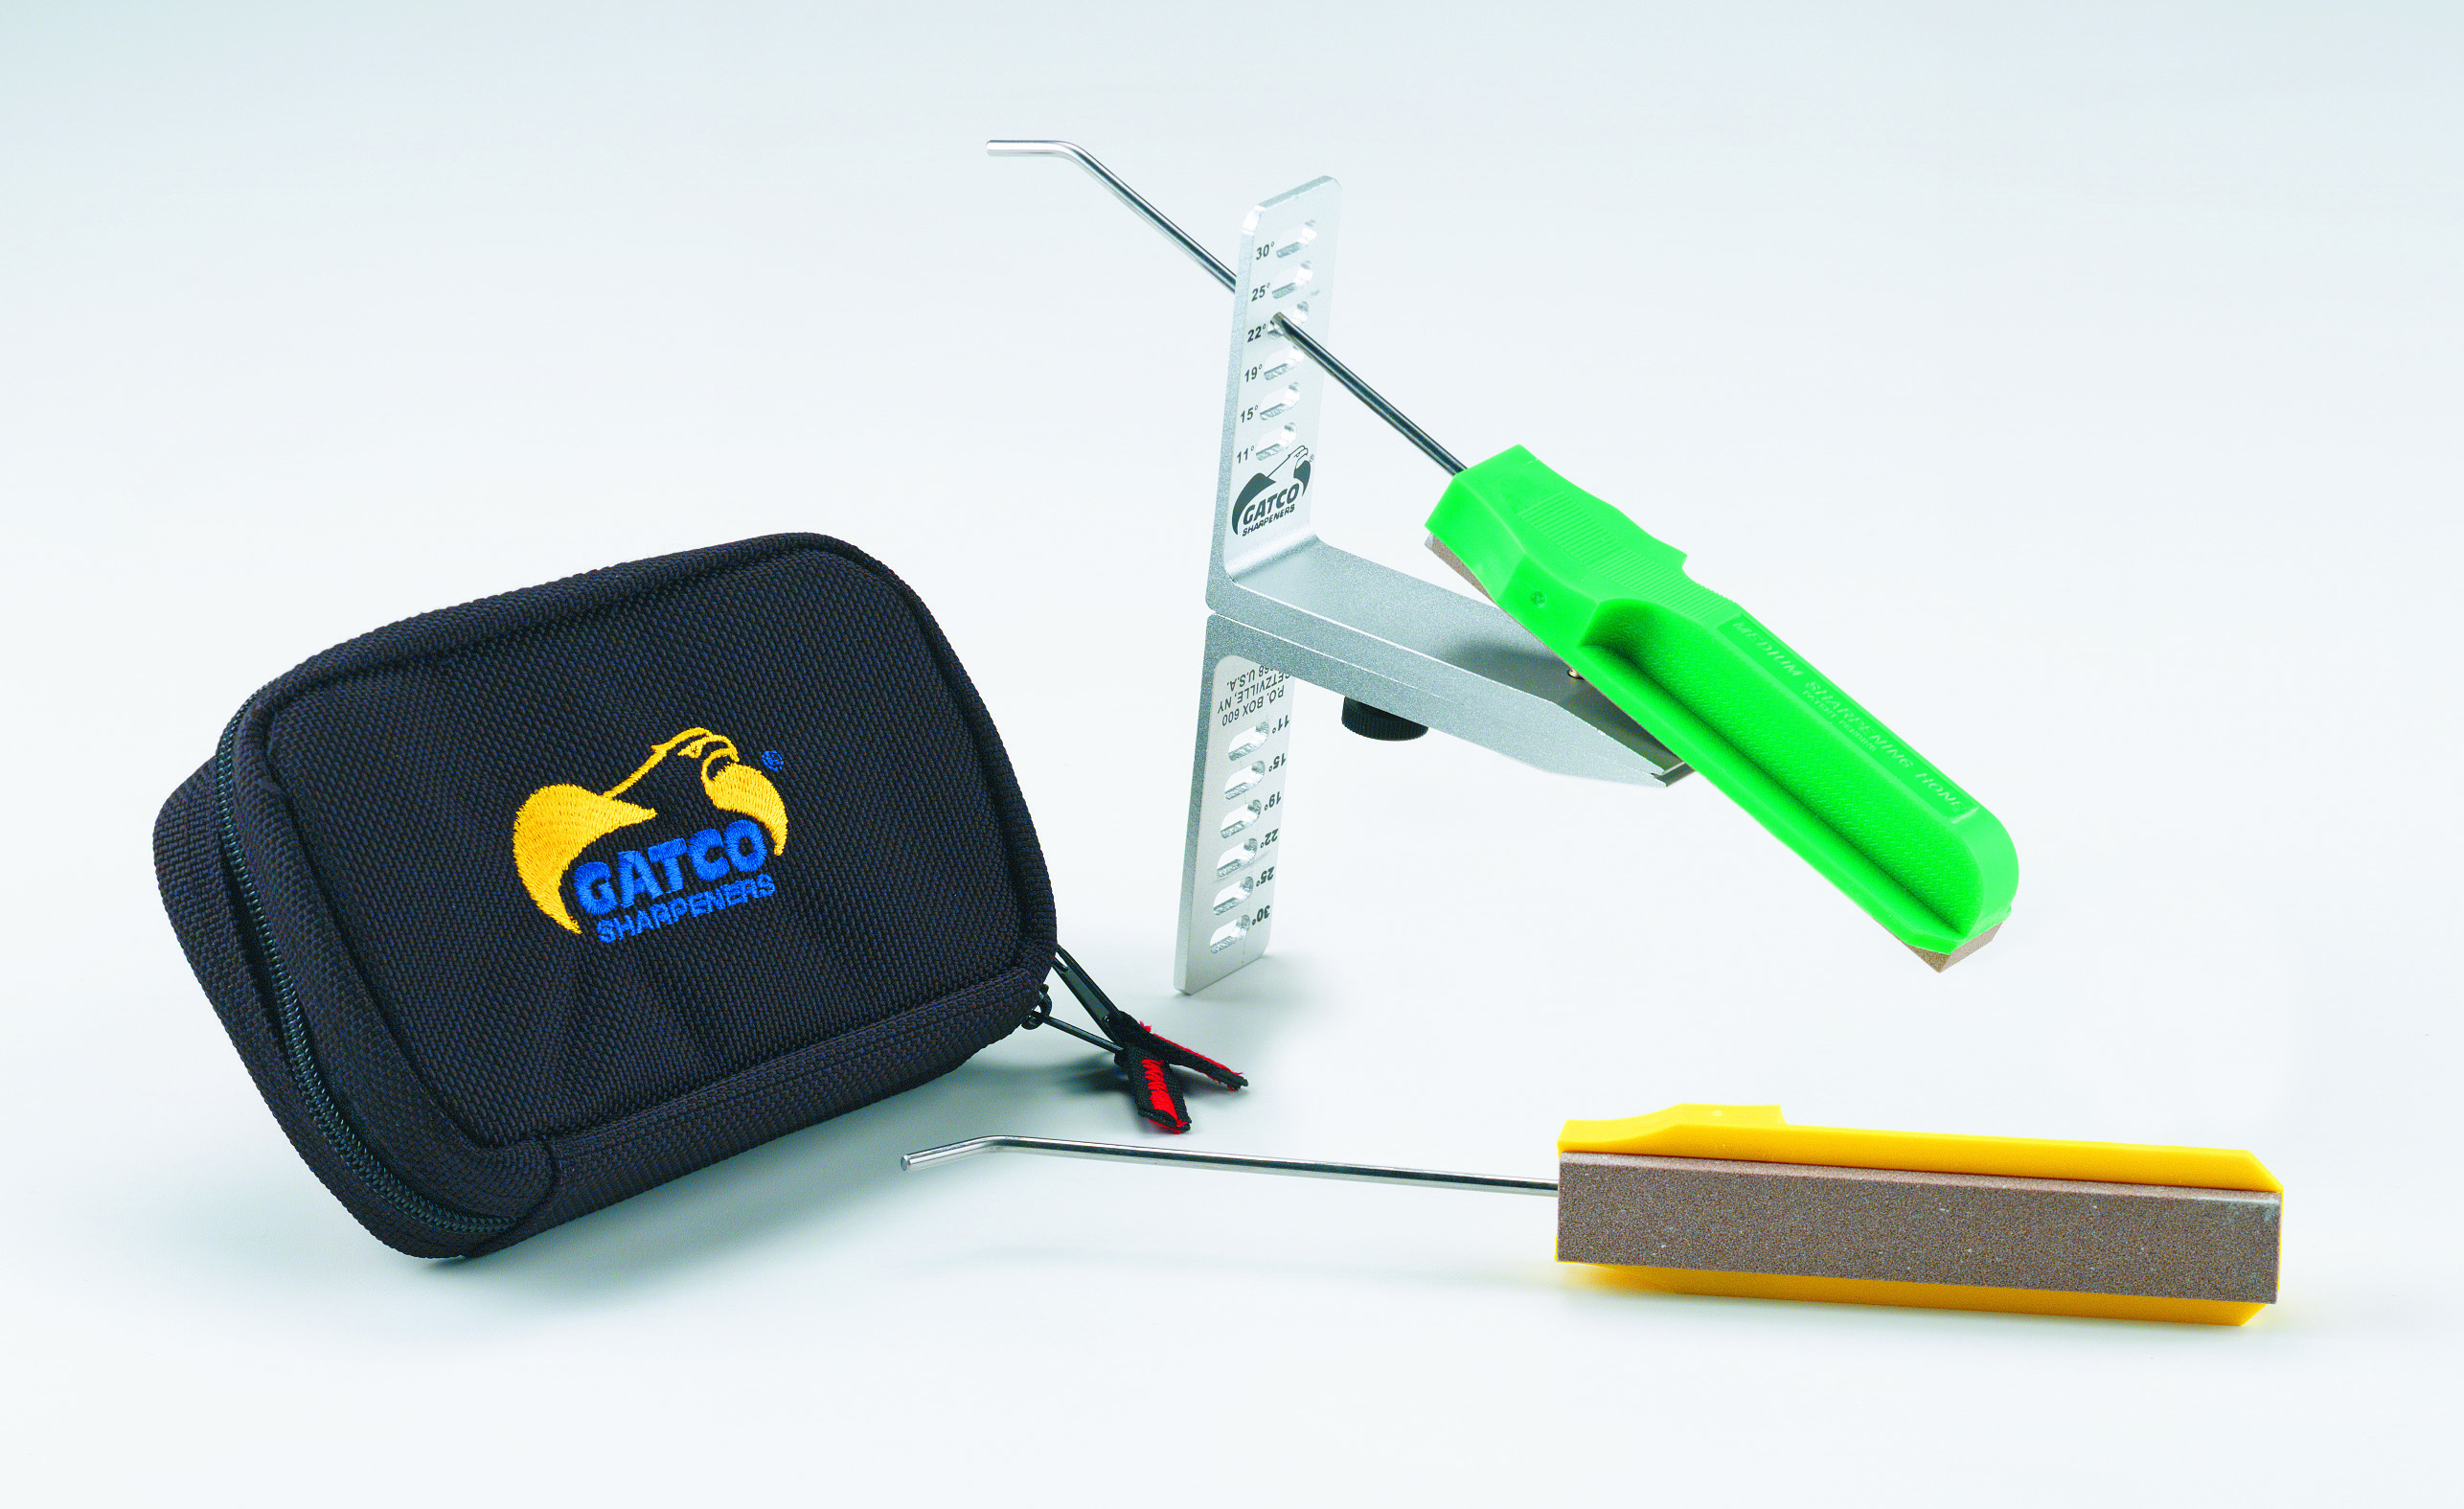 10002 - GATCO 2-HONE BACKPACKER SHARPENING SYSTEM